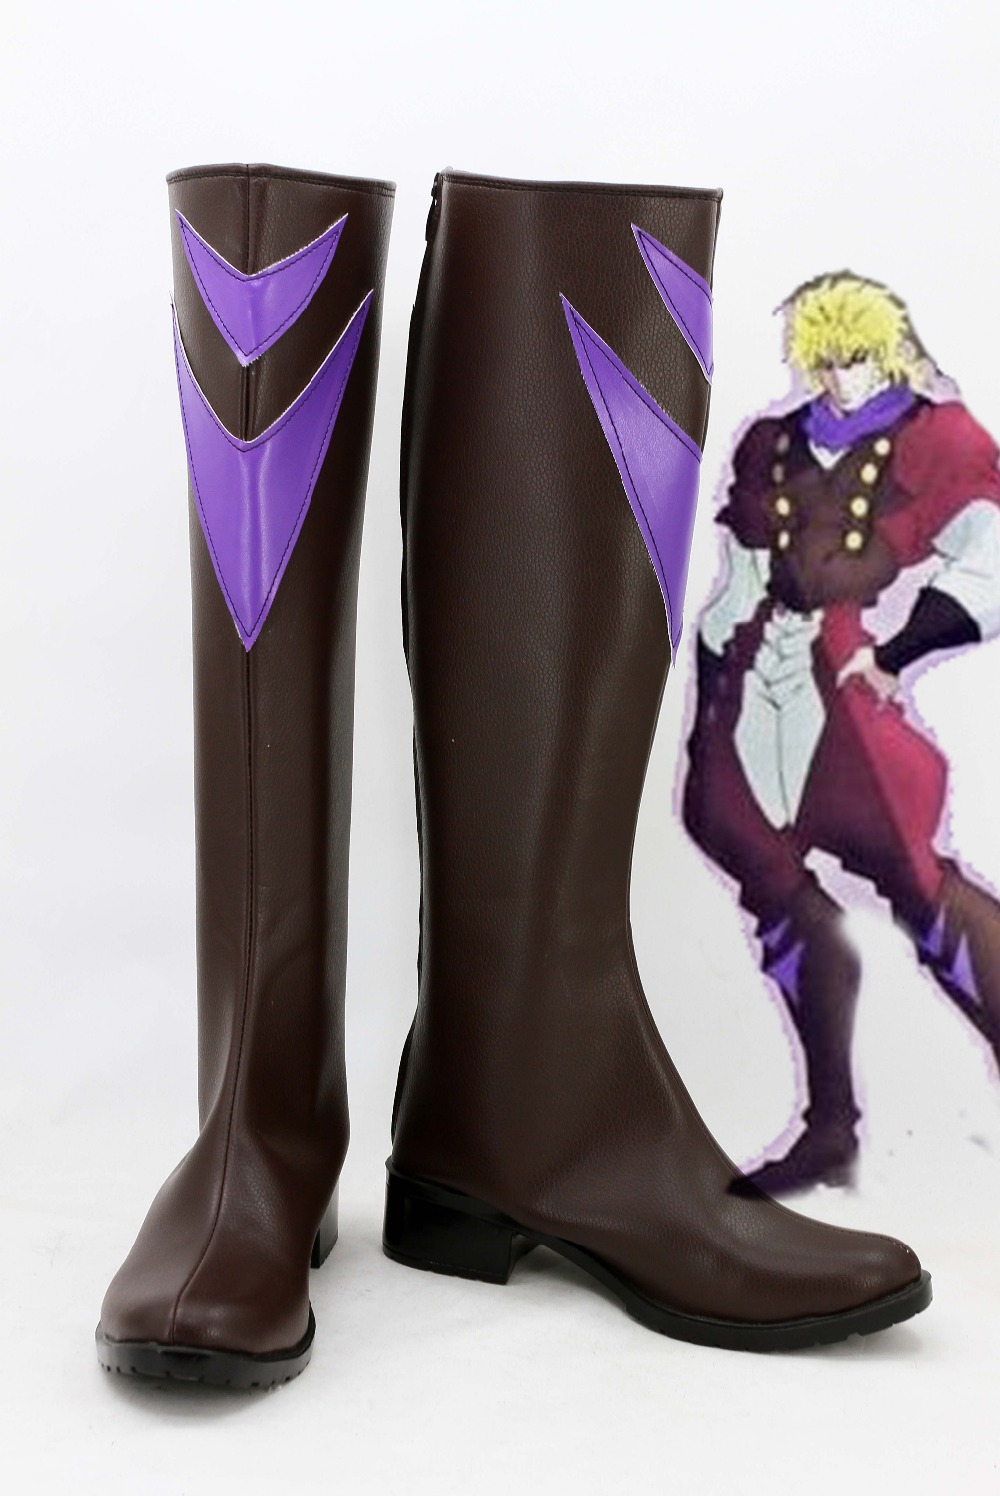 Jojo's Bizarre Adventure Cosplay Dio Brando Cosplay Boots Shoes Adult Men Party Halloween Shoes Custom Made Boots